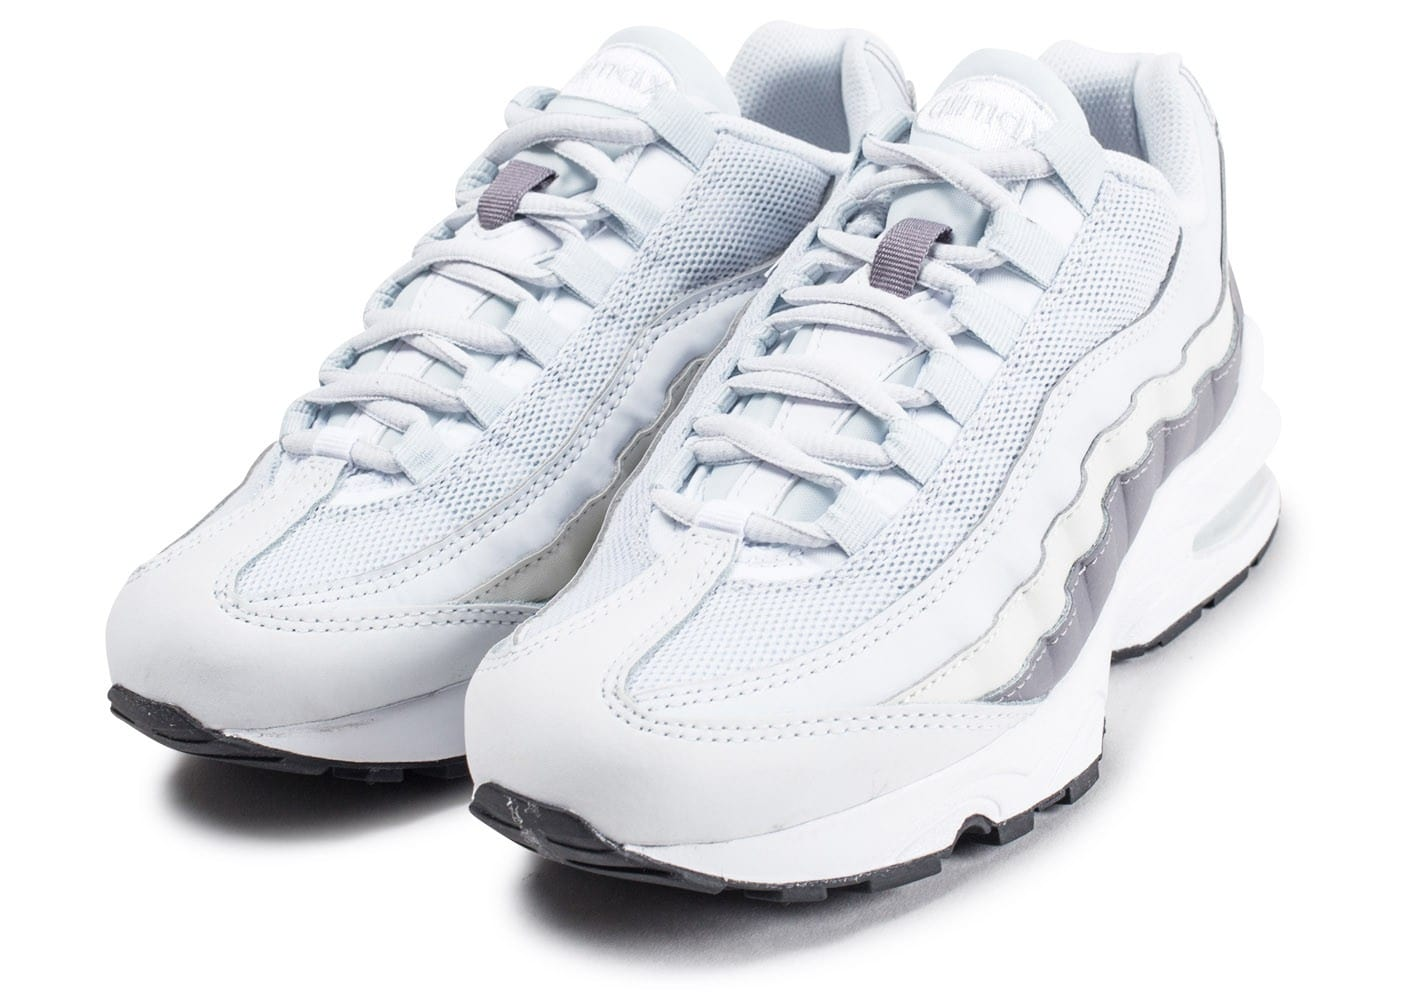 size 40 de158 a8d7c sweden air max 95 junior reflective 0113e 332ff